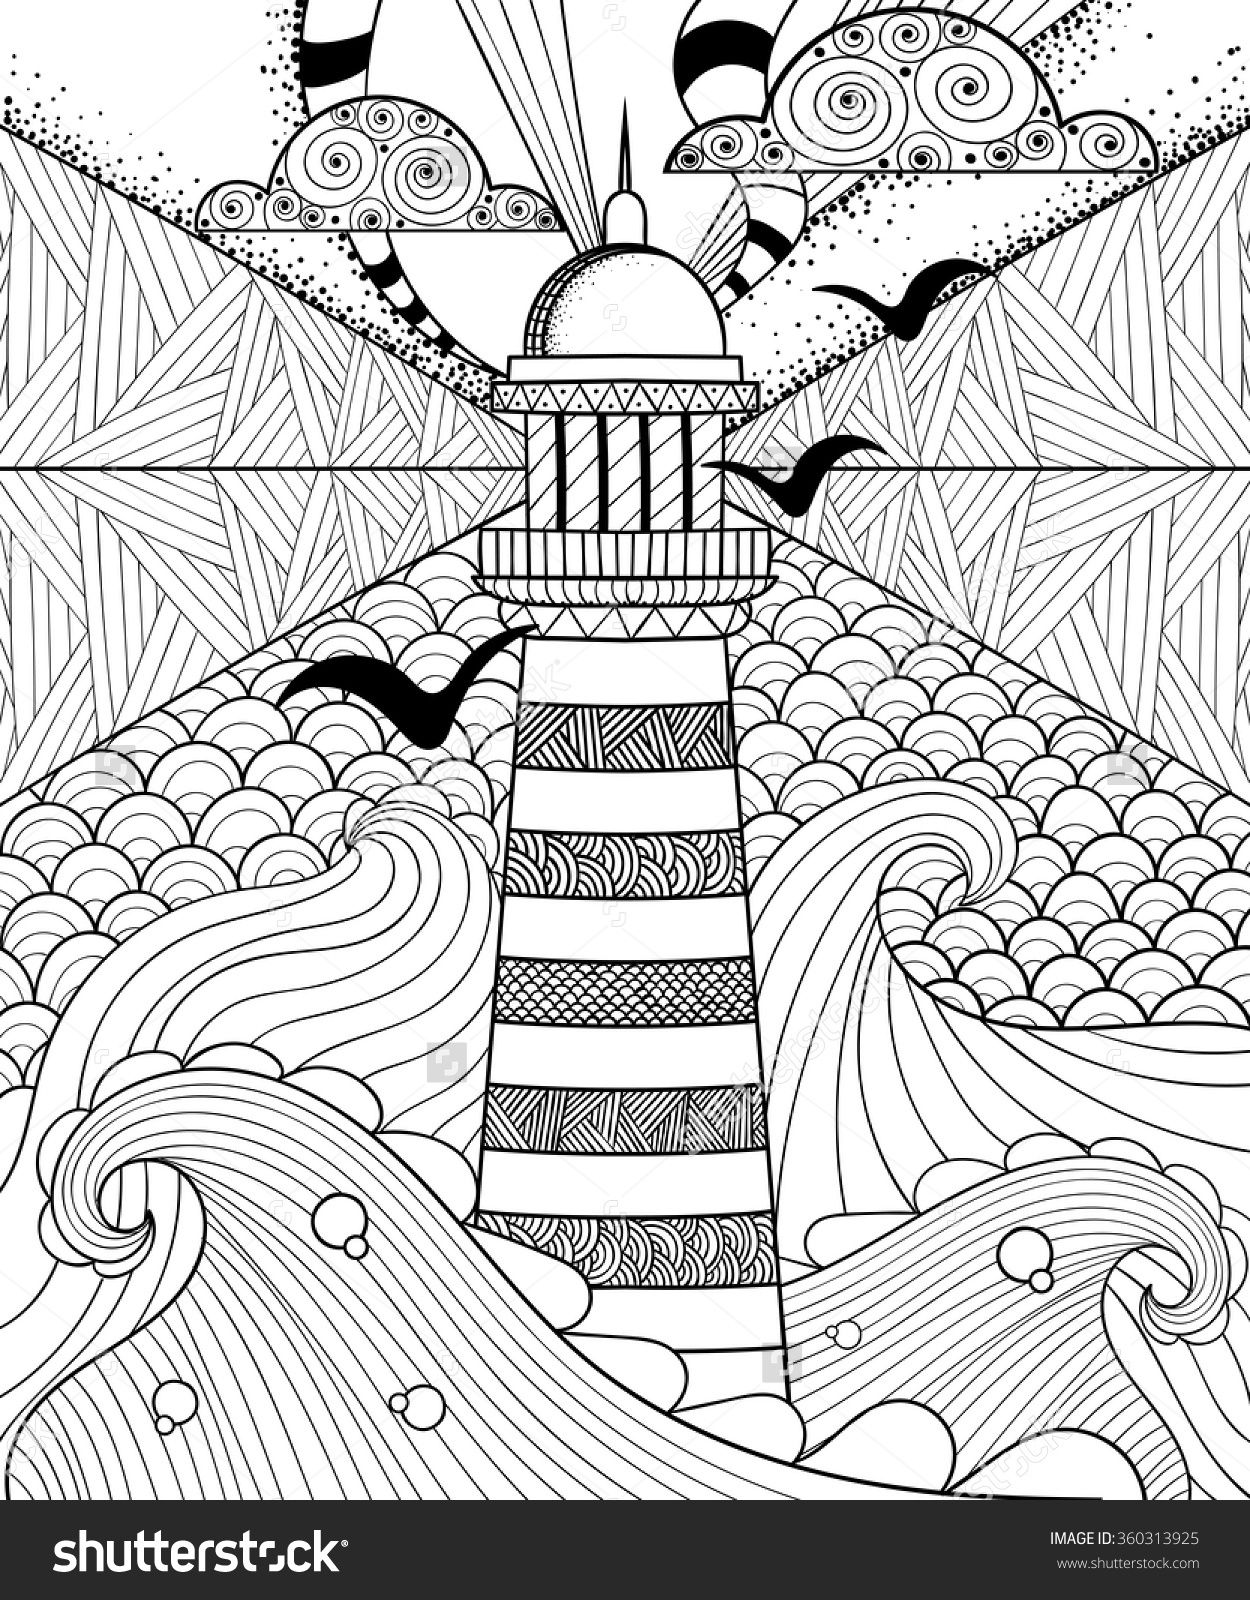 Coloring pages for adults zentangle - Hand Drawn Artistically Ethnic Ornamental Patterned Lighthouse With Clouds In Doodle Zentangle Tribal Style For Adult Coloring Book Pages Tattoo